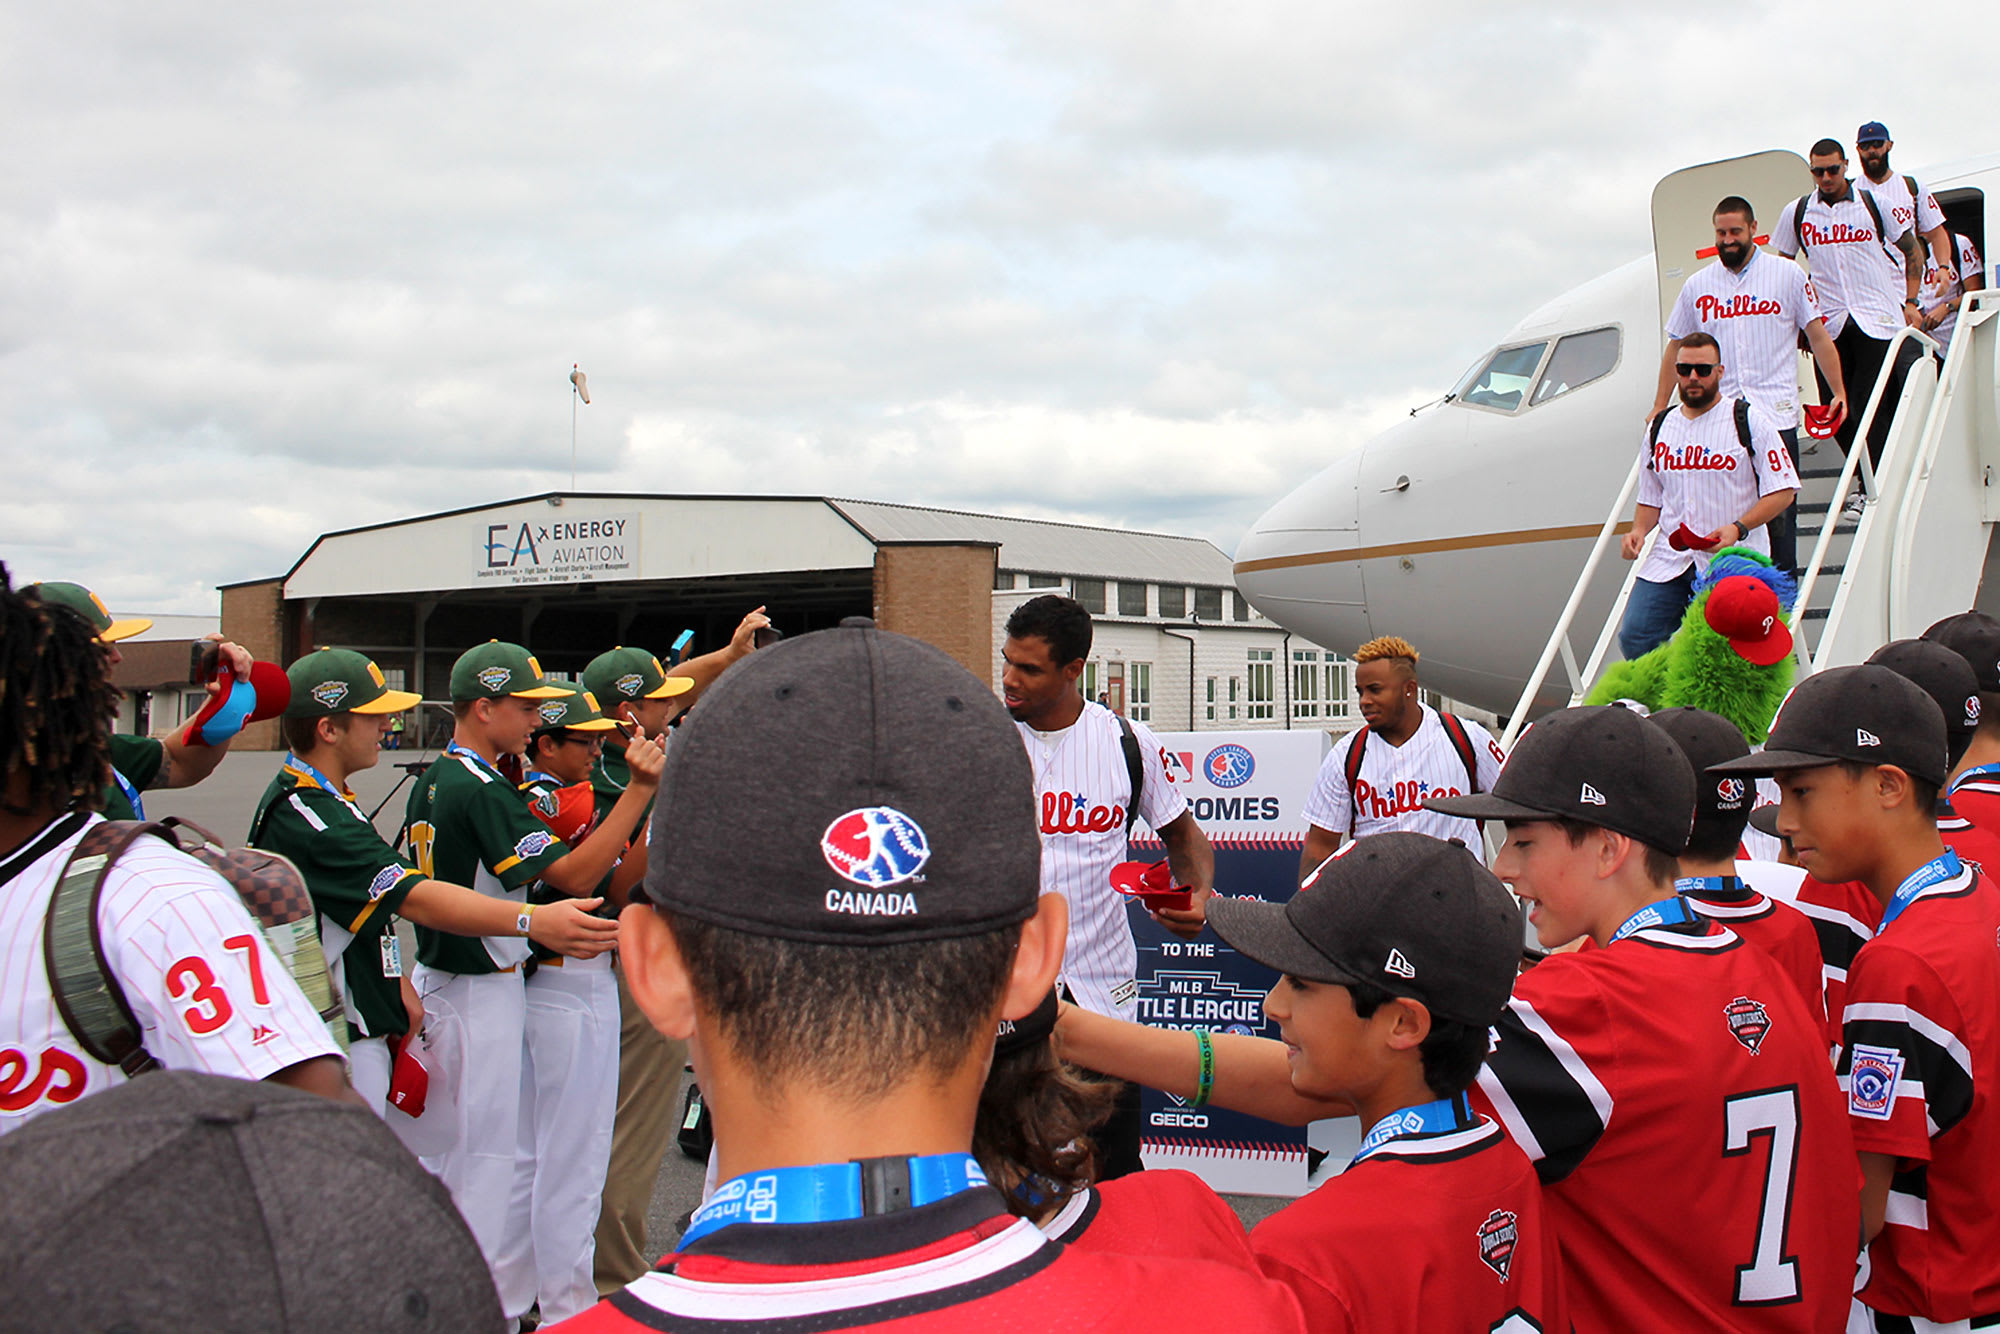 phillies players getting off airplane